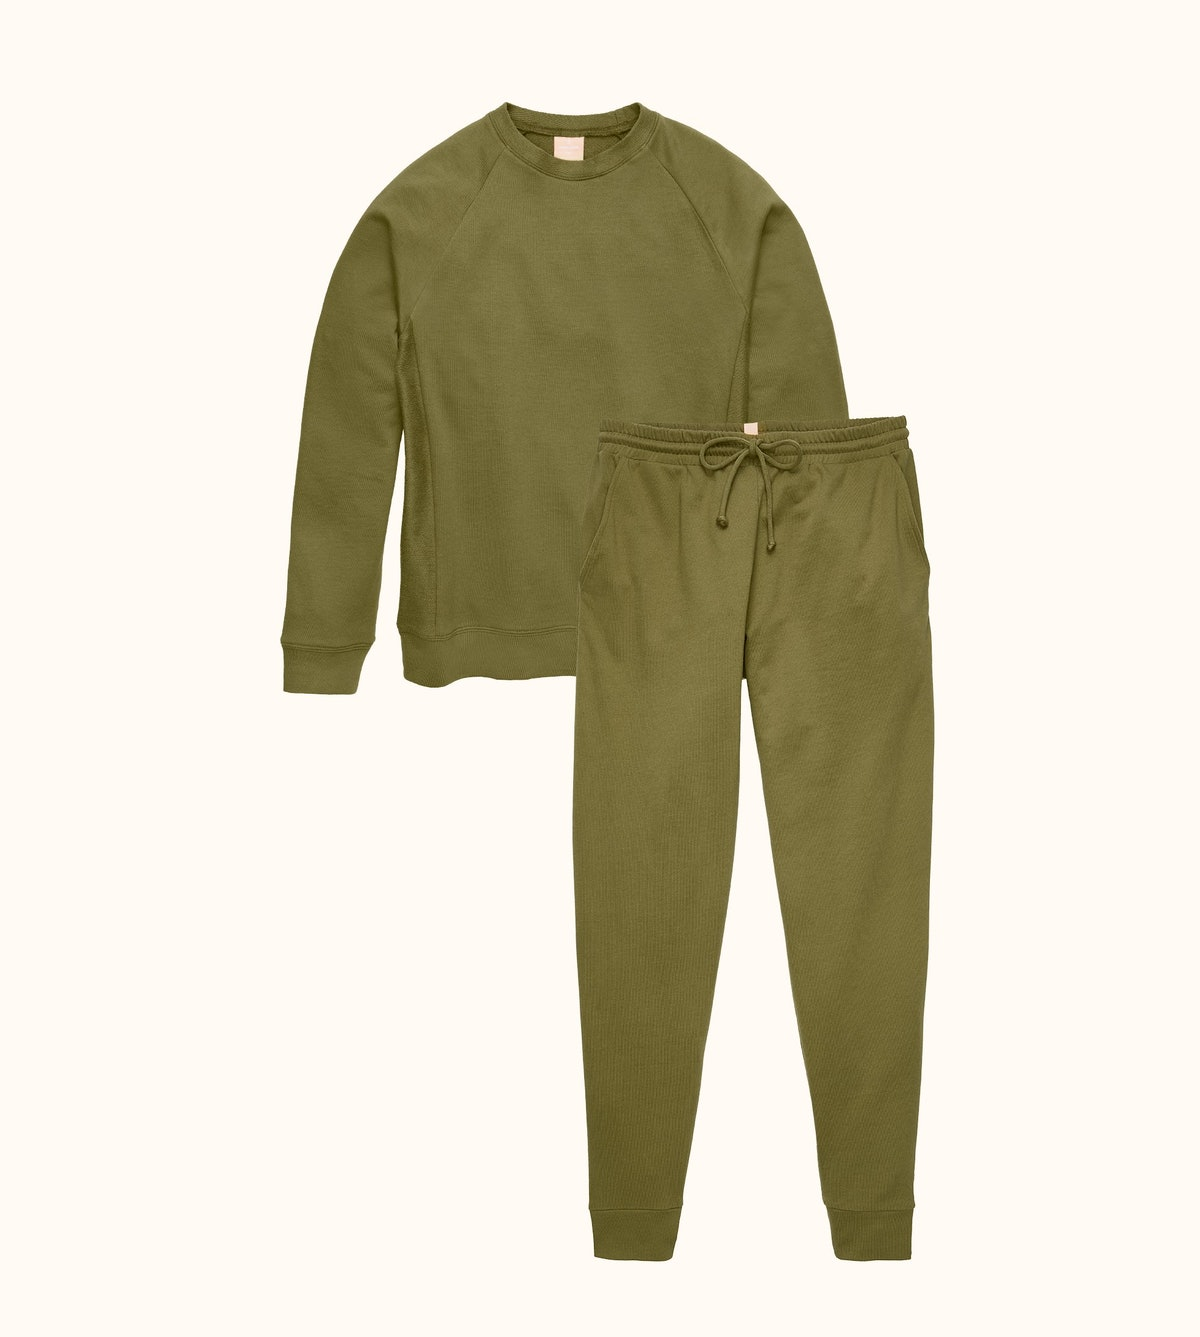 The French Terry Jogger Set